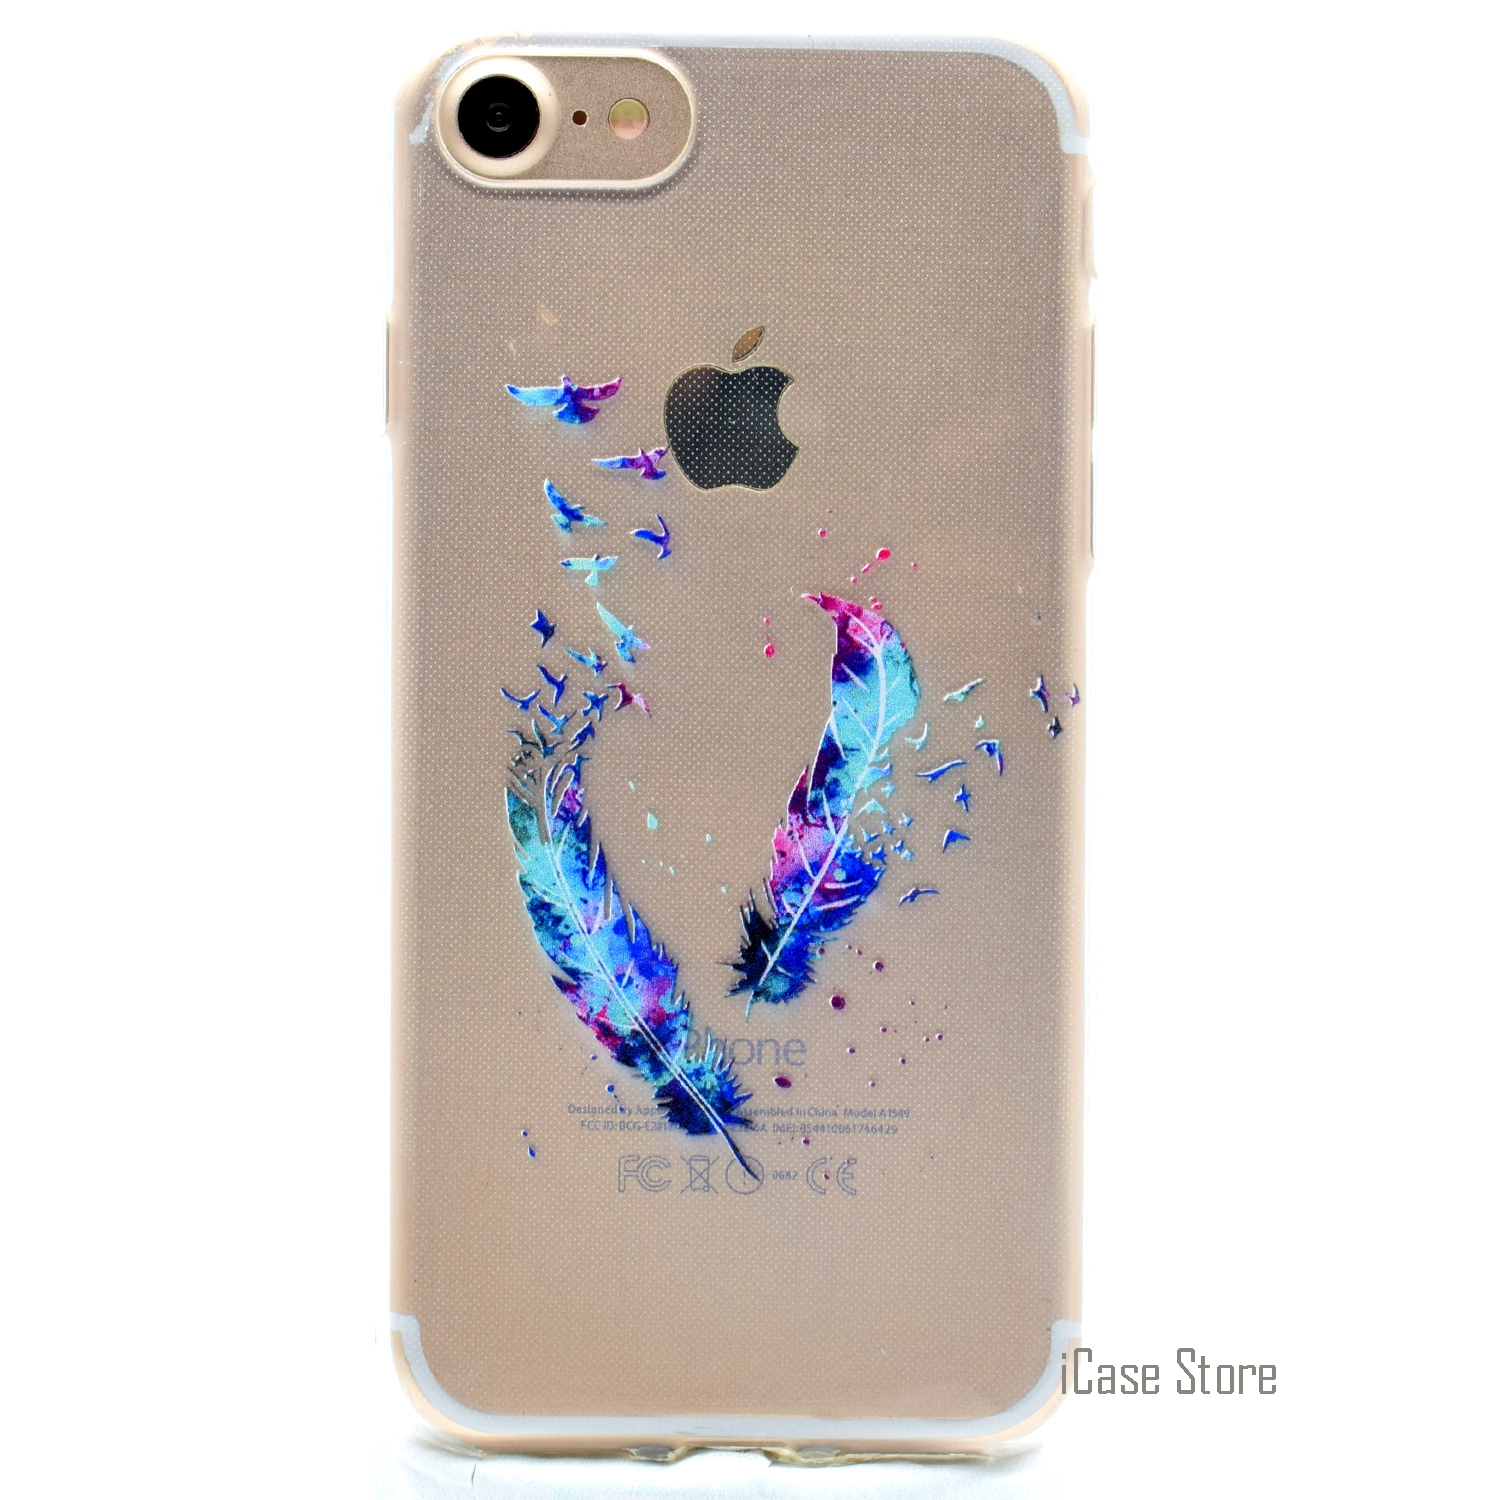 High Quality Cute Cartoon Phone Case For iPhone 7 Soft Silicone Gel Phonet Casi Pone Css ...